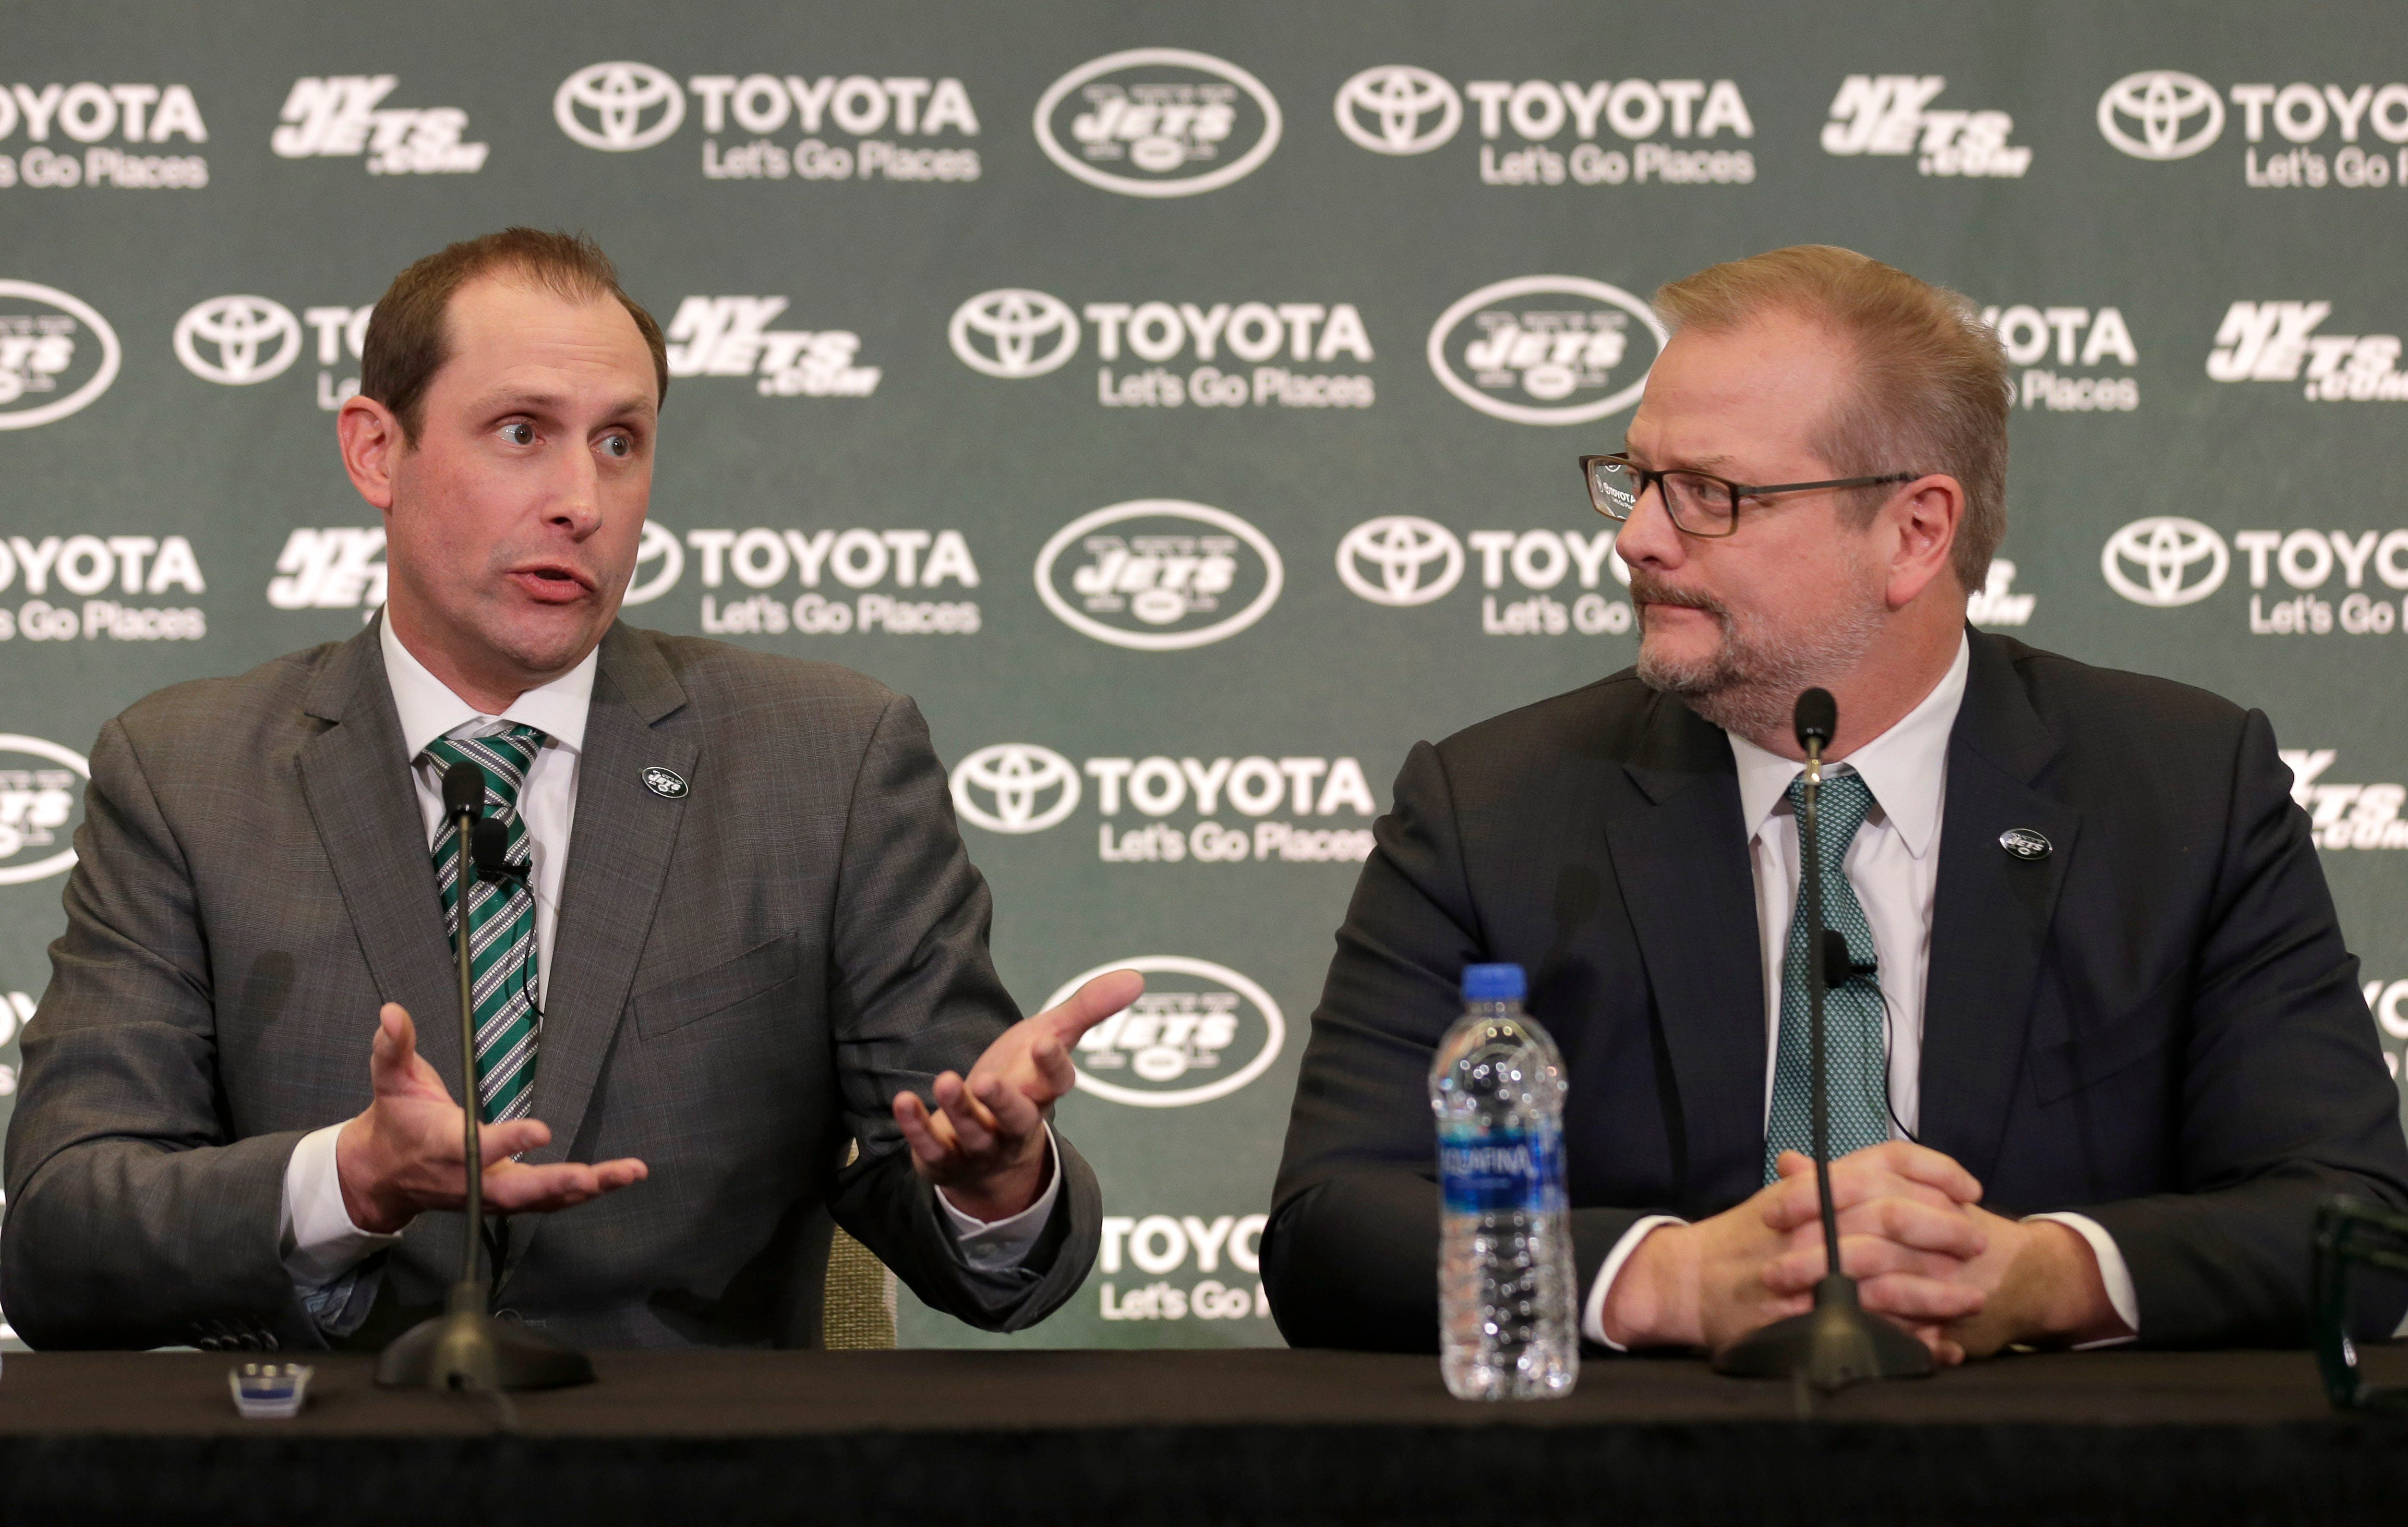 Jets GM Mike Maccagnan says there's no rift between him and coach Adam Gase